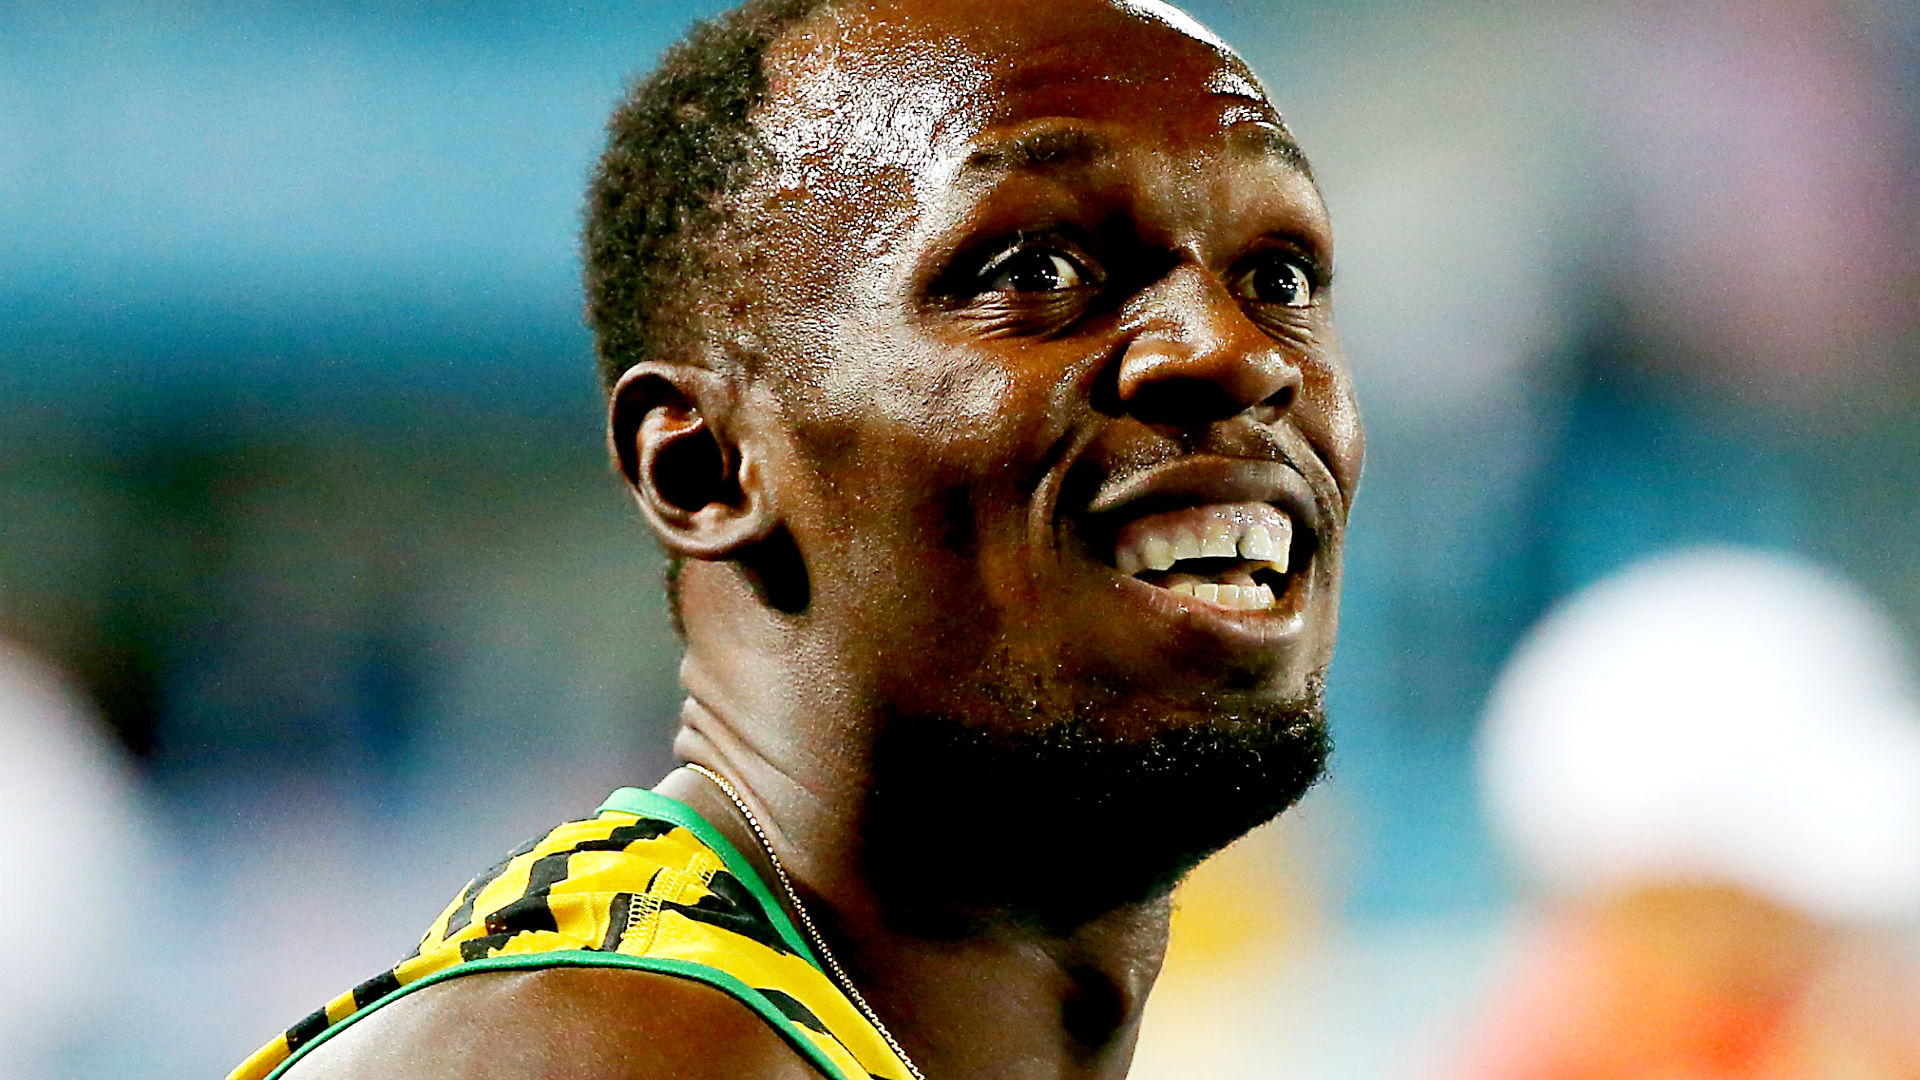 Usain Bolt of Jamaica at the Olympics.